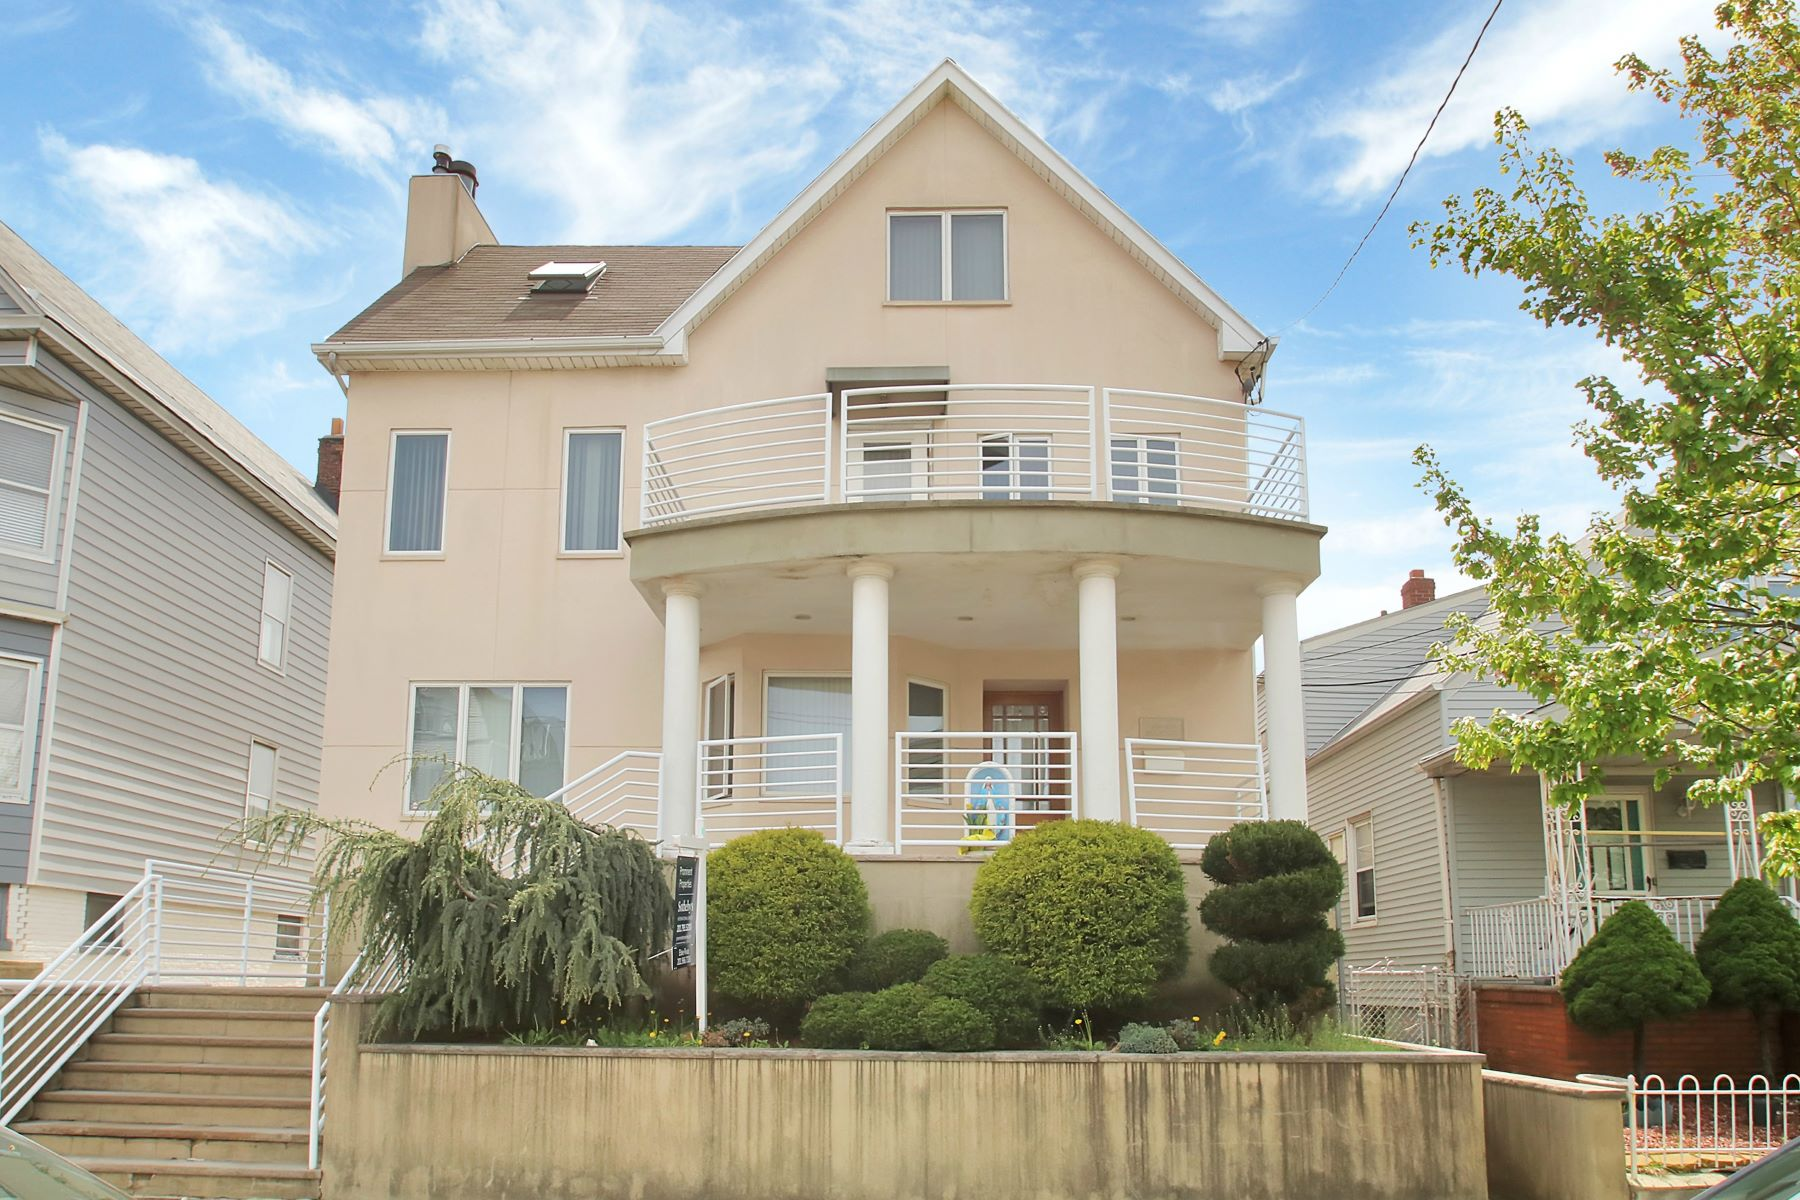 متعددة للعائلات الرئيسية للـ Sale في Exceptional one of a kind colonial Home 140 West 25th Street Bayonne, New Jersey 07002 United States